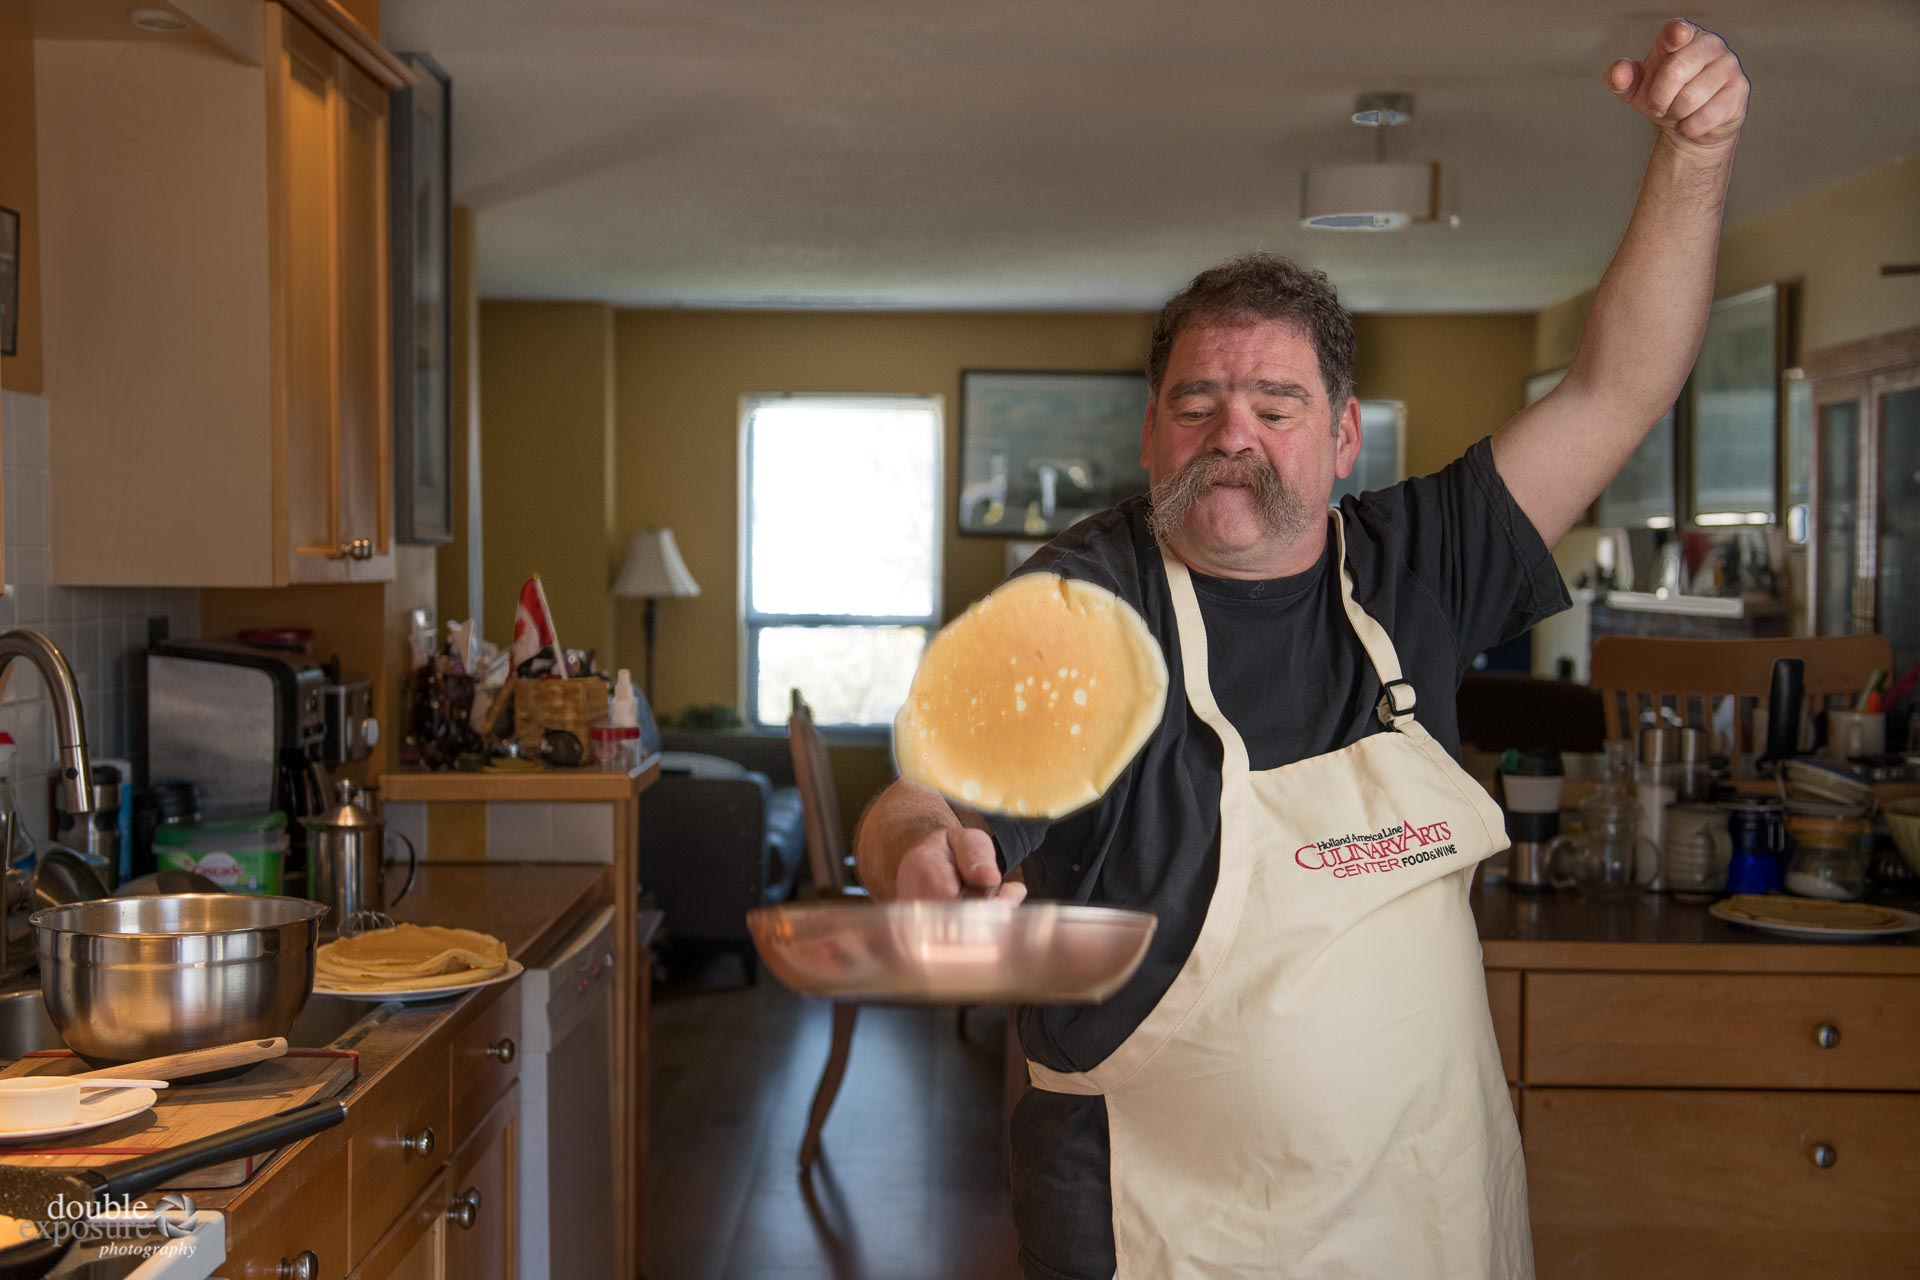 chef flips crepes